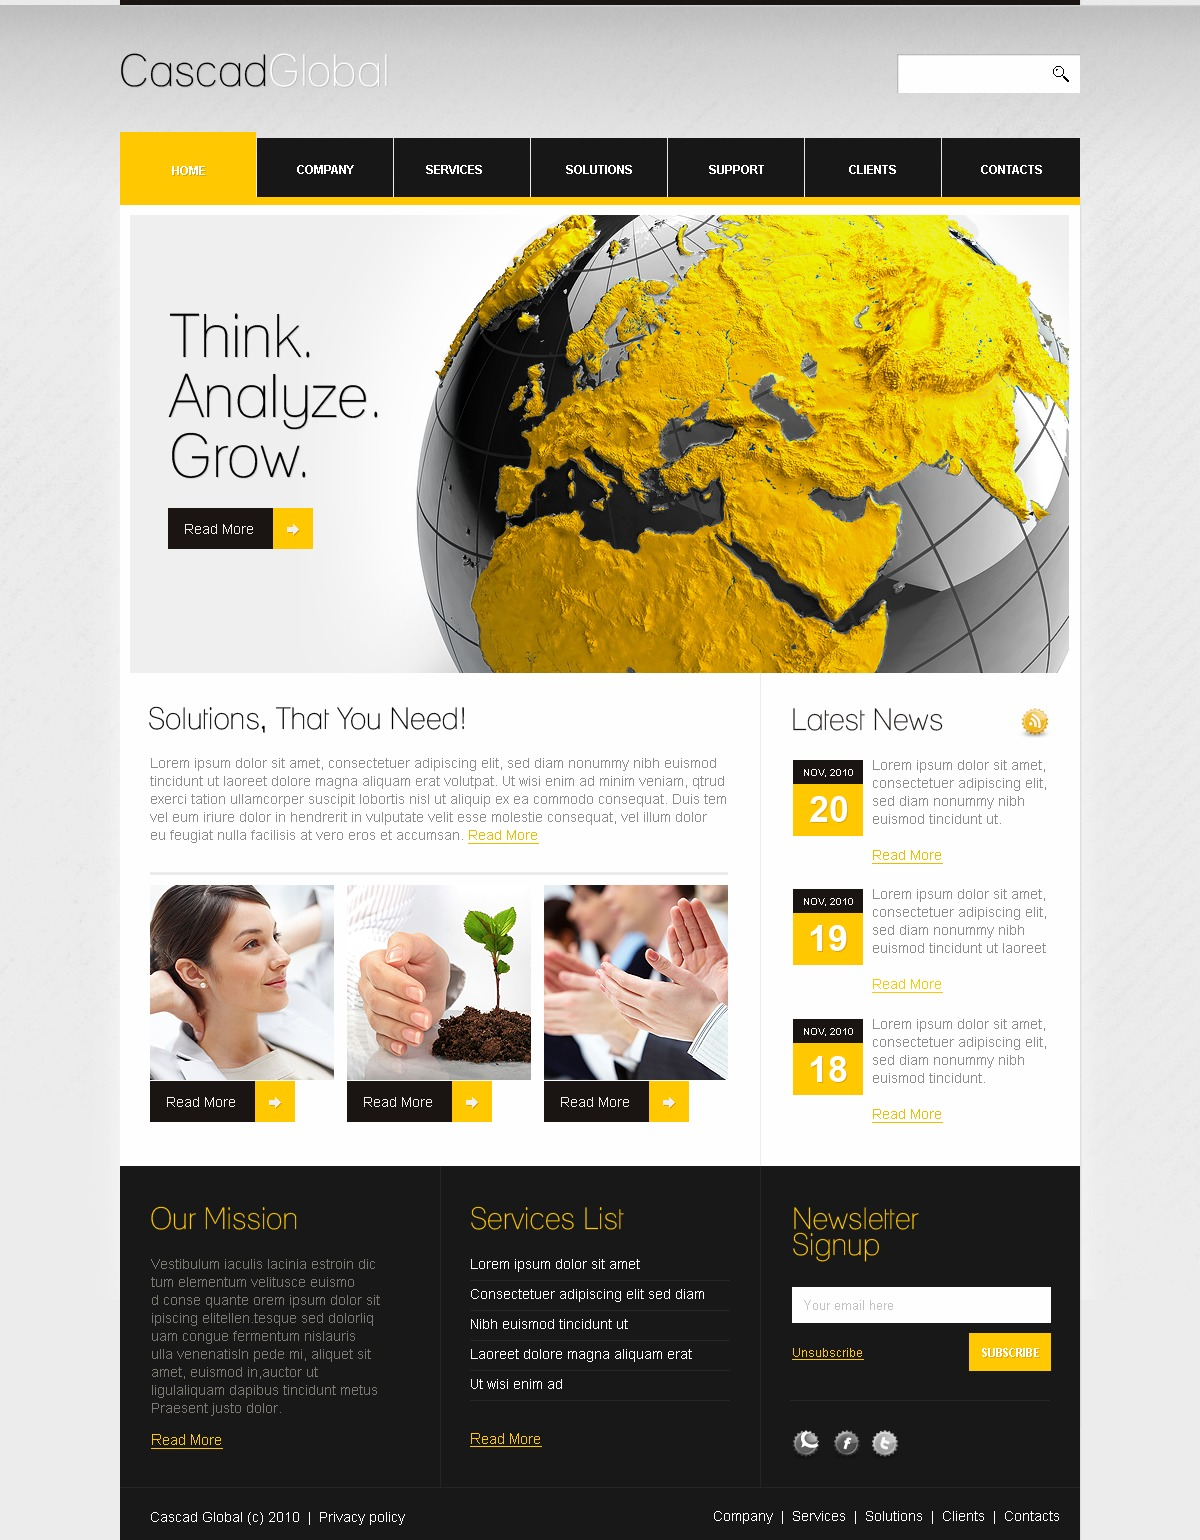 The Cascad Global Business Company PSD Design 54067, one of the best PSD templates of its kind (business, wide), also known as cascad global business company PSD template, corporate solutions PSD template, innovations PSD template, contacts PSD template, service PSD template, support PSD template, information dealer PSD template, stocks PSD template, team PSD template, success PSD template, money PSD template, marketing PSD template, director PSD template, manager PSD template, analytics PSD template, planning PSD template, limited PSD template, office PSD template, sales and related with cascad global business company, corporate solutions, innovations, contacts, service, support, information dealer, stocks, team, success, money, marketing, director, manager, analytics, planning, limited, office, sales, etc.